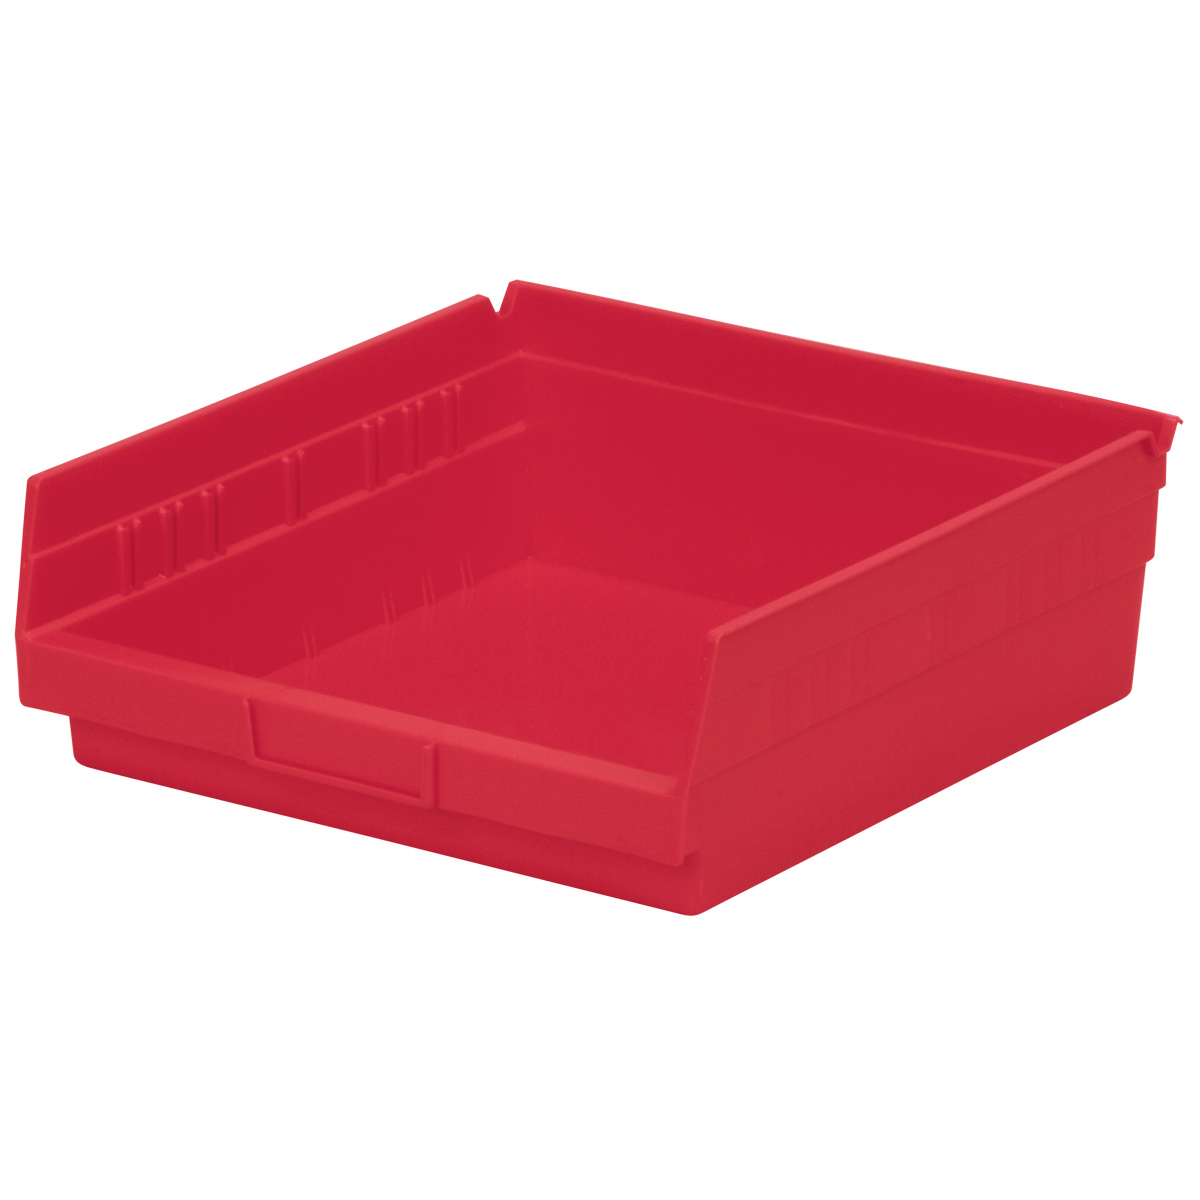 Shelf Bin 11-5/8 x 11-1/8 x 4, Red (30170RED).  This item sold in carton quantities of 12.